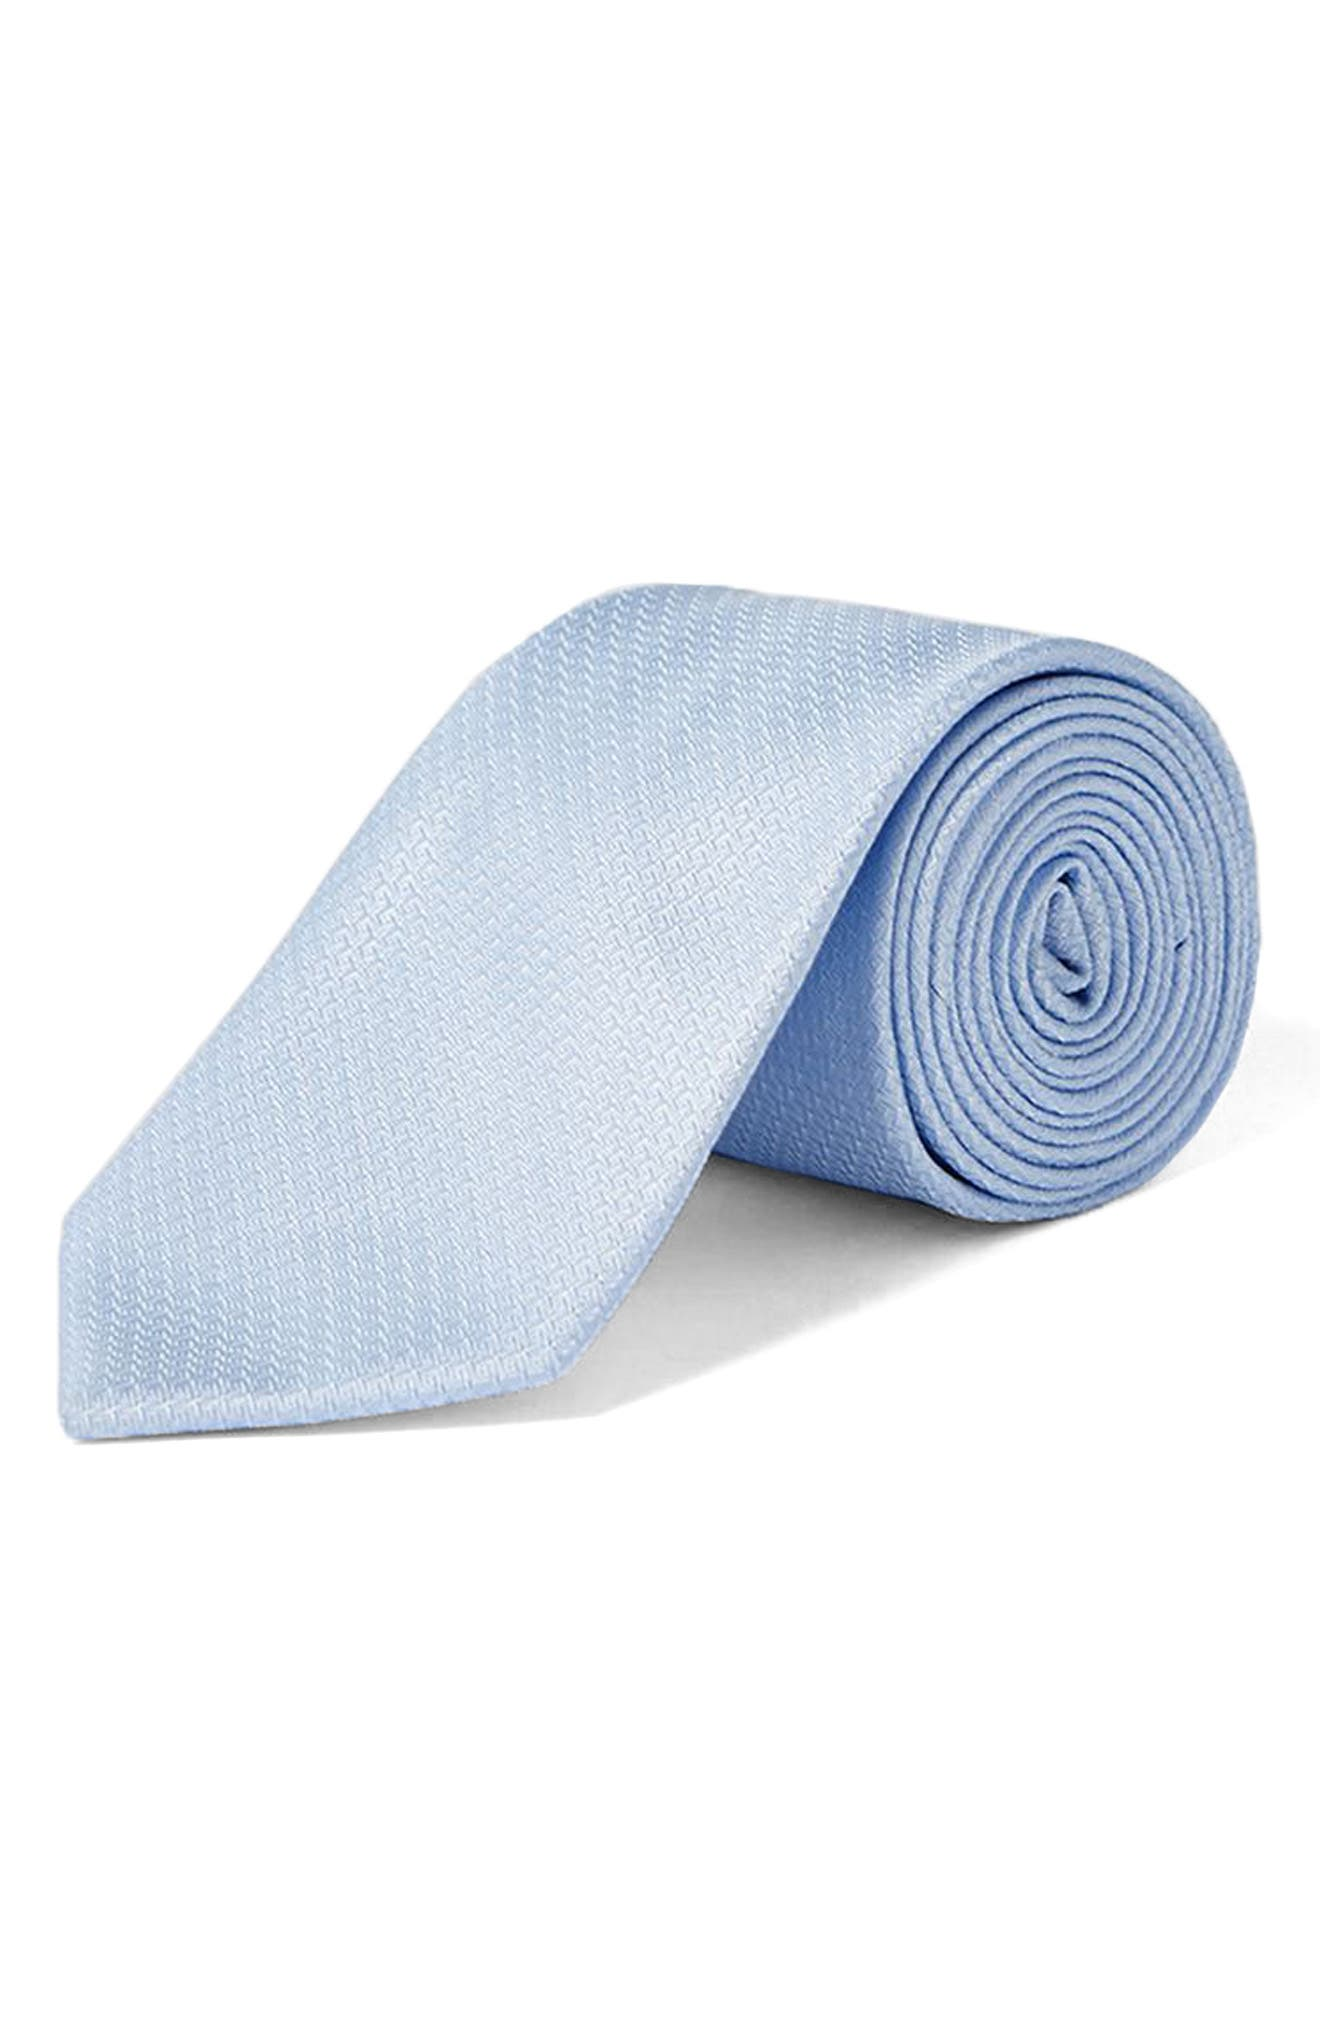 Textured Woven Tie,                         Main,                         color, 450